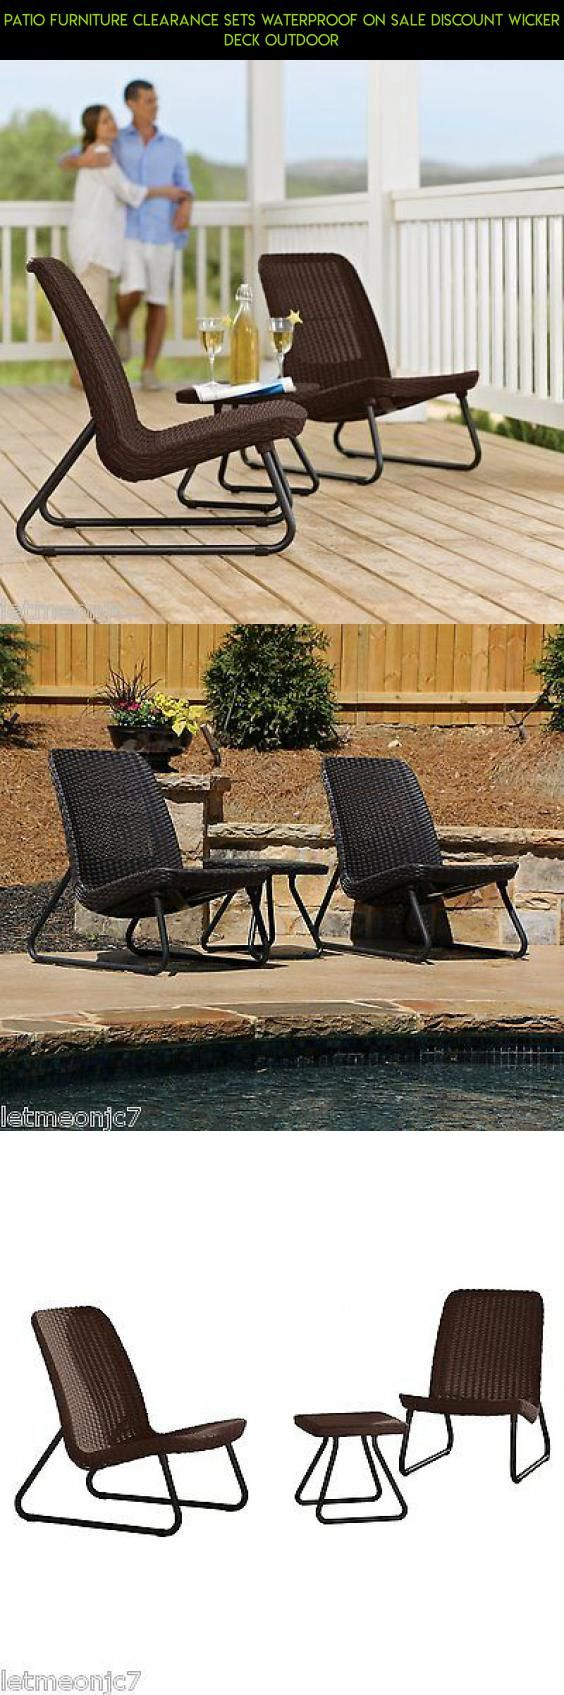 Discount outdoor fabric by the yard - Patio Furniture Clearance Sets Waterproof On Sale Discount Wicker Deck Outdoor Furniture Plans